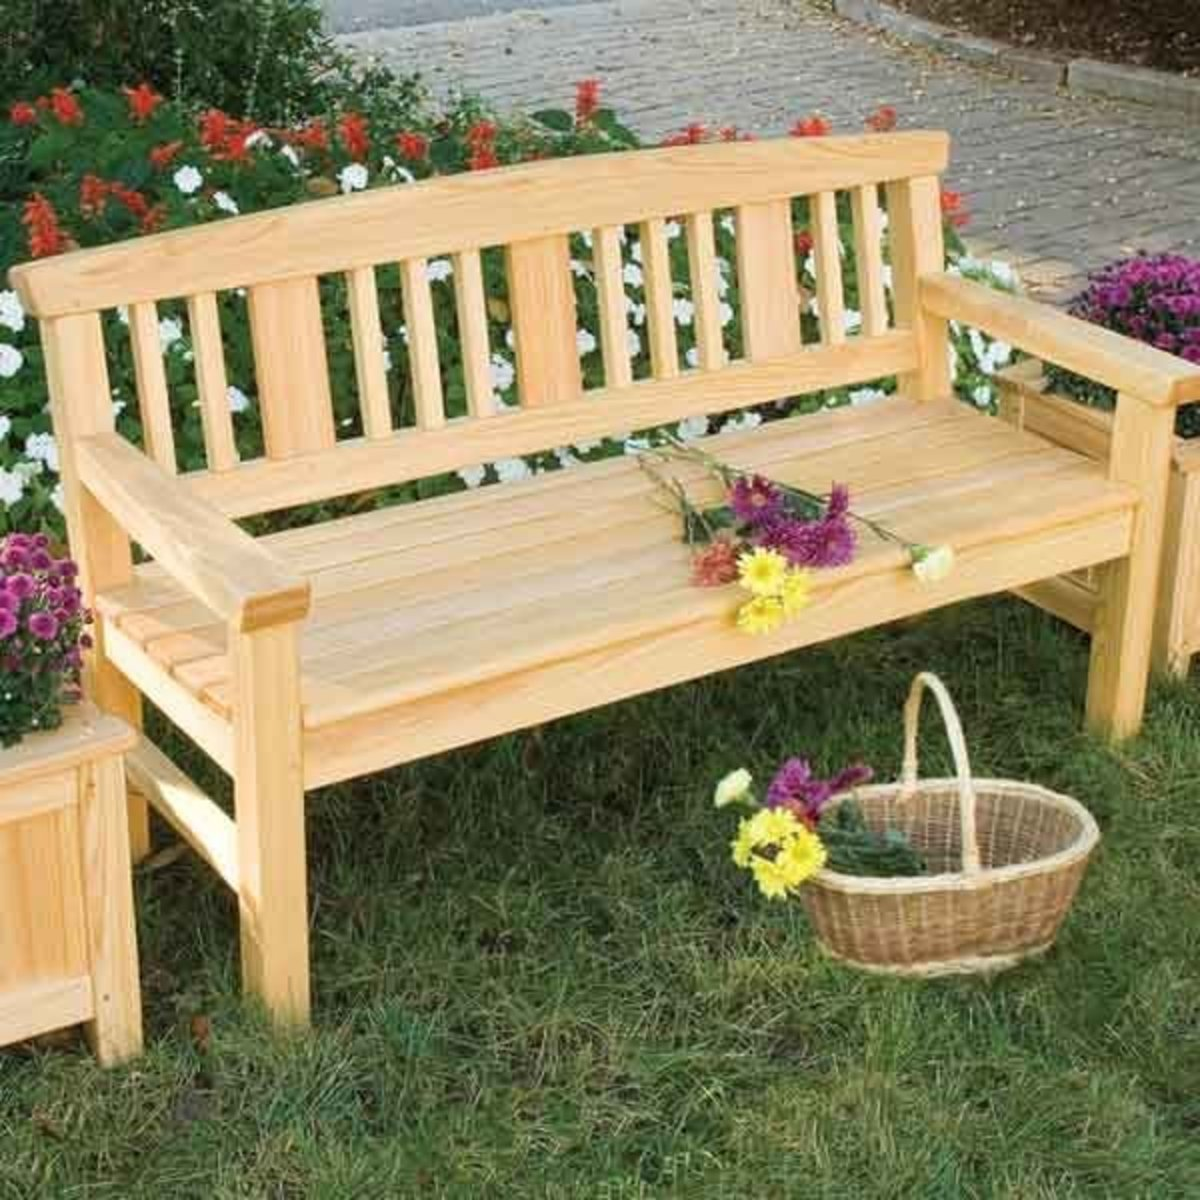 Awesome Woodcraft Magazine Garden Bench Downloadable Plan Spiritservingveterans Wood Chair Design Ideas Spiritservingveteransorg